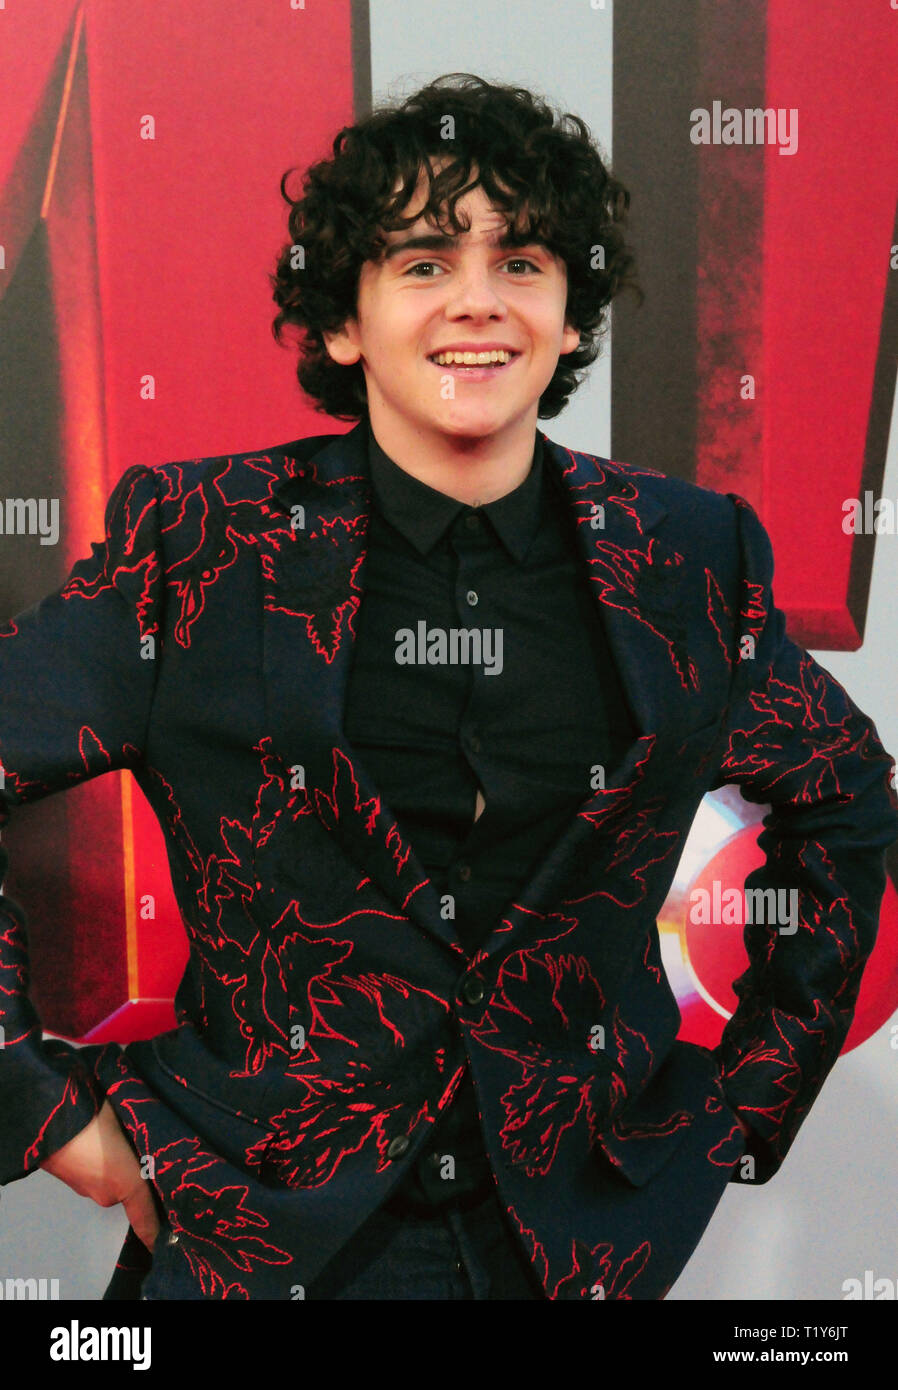 LOS ANGELES, CA - MARCH 28: Actor Jack Dylan Grazer attends